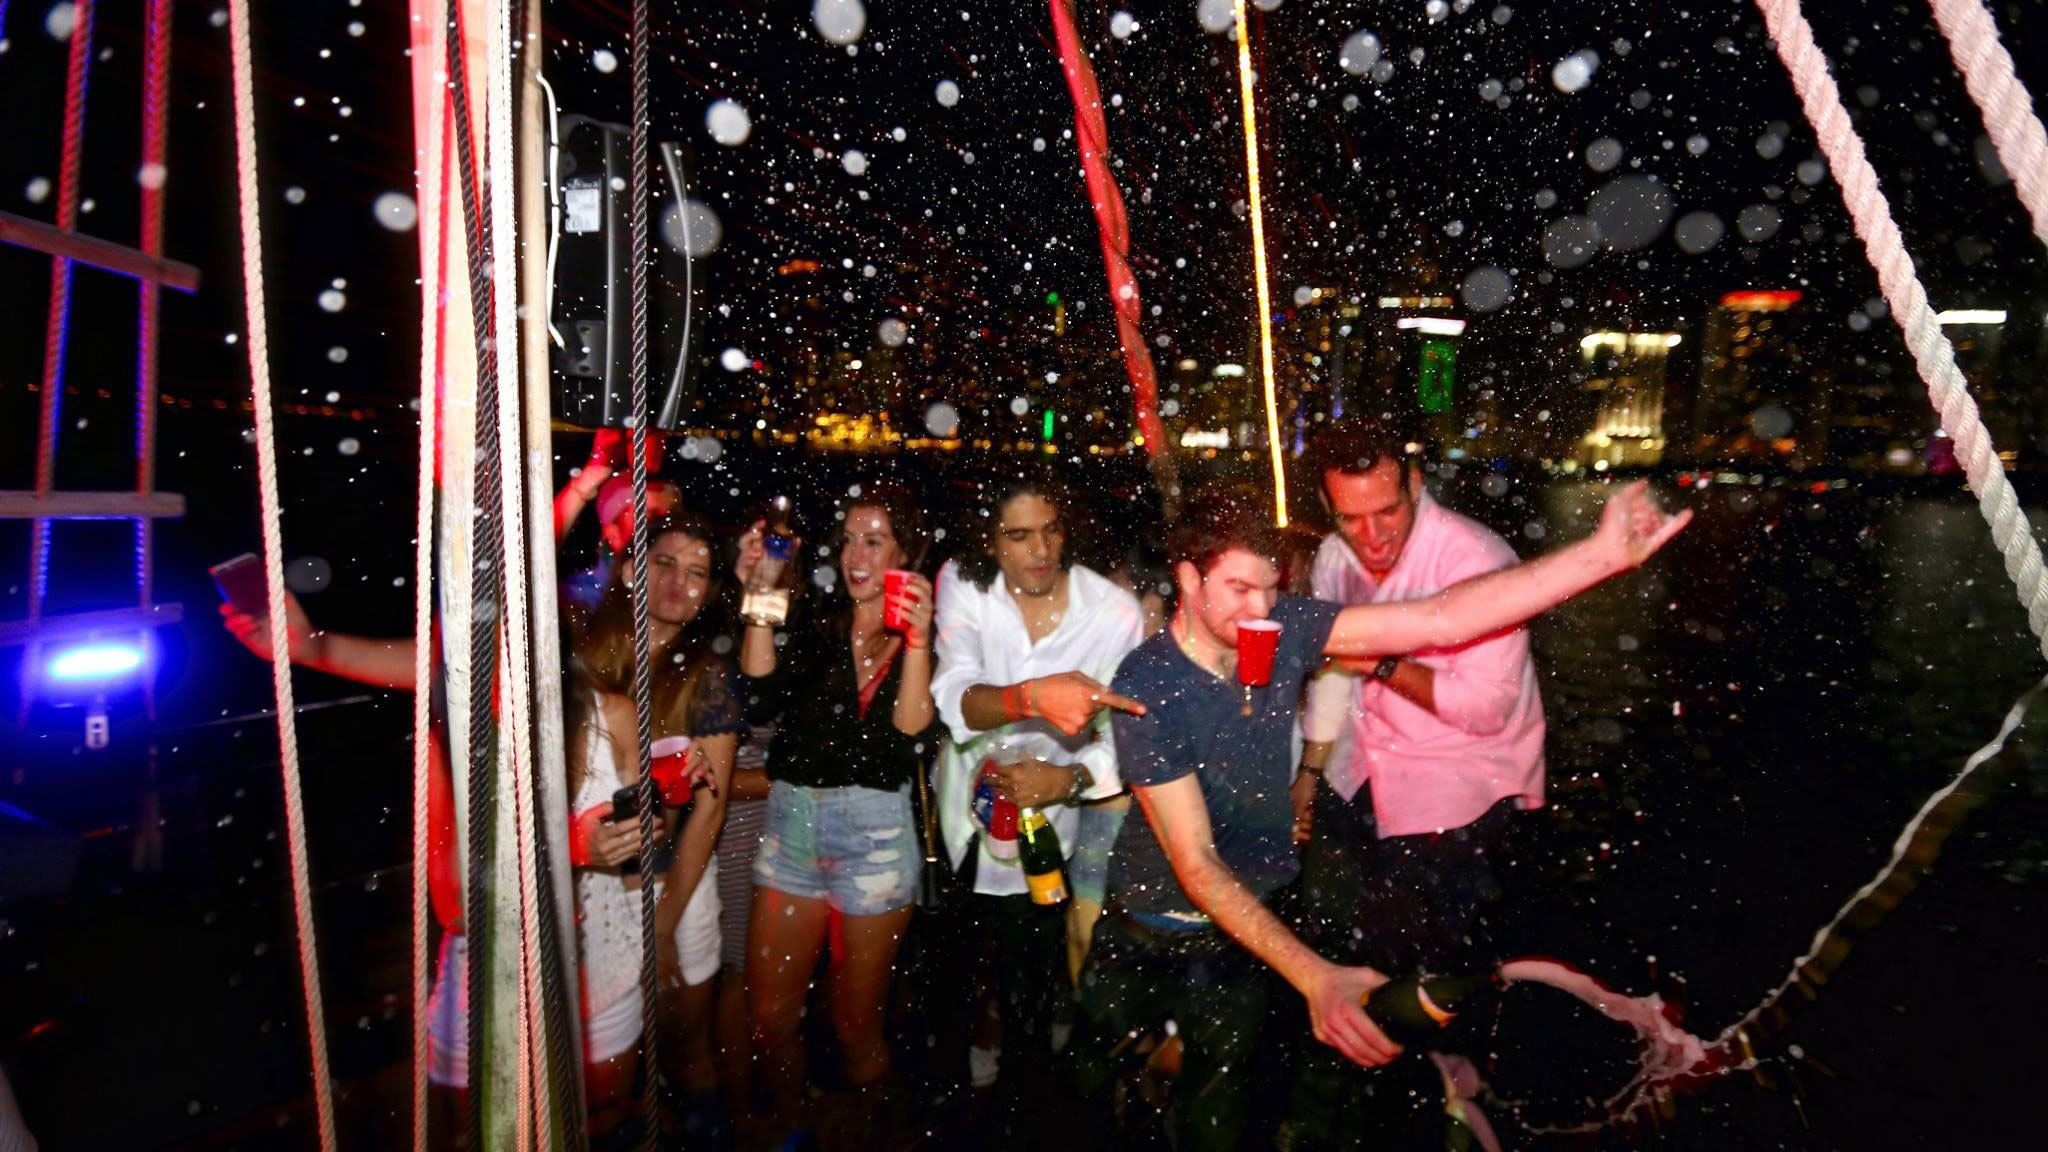 Group partying on a boat at night in Miami